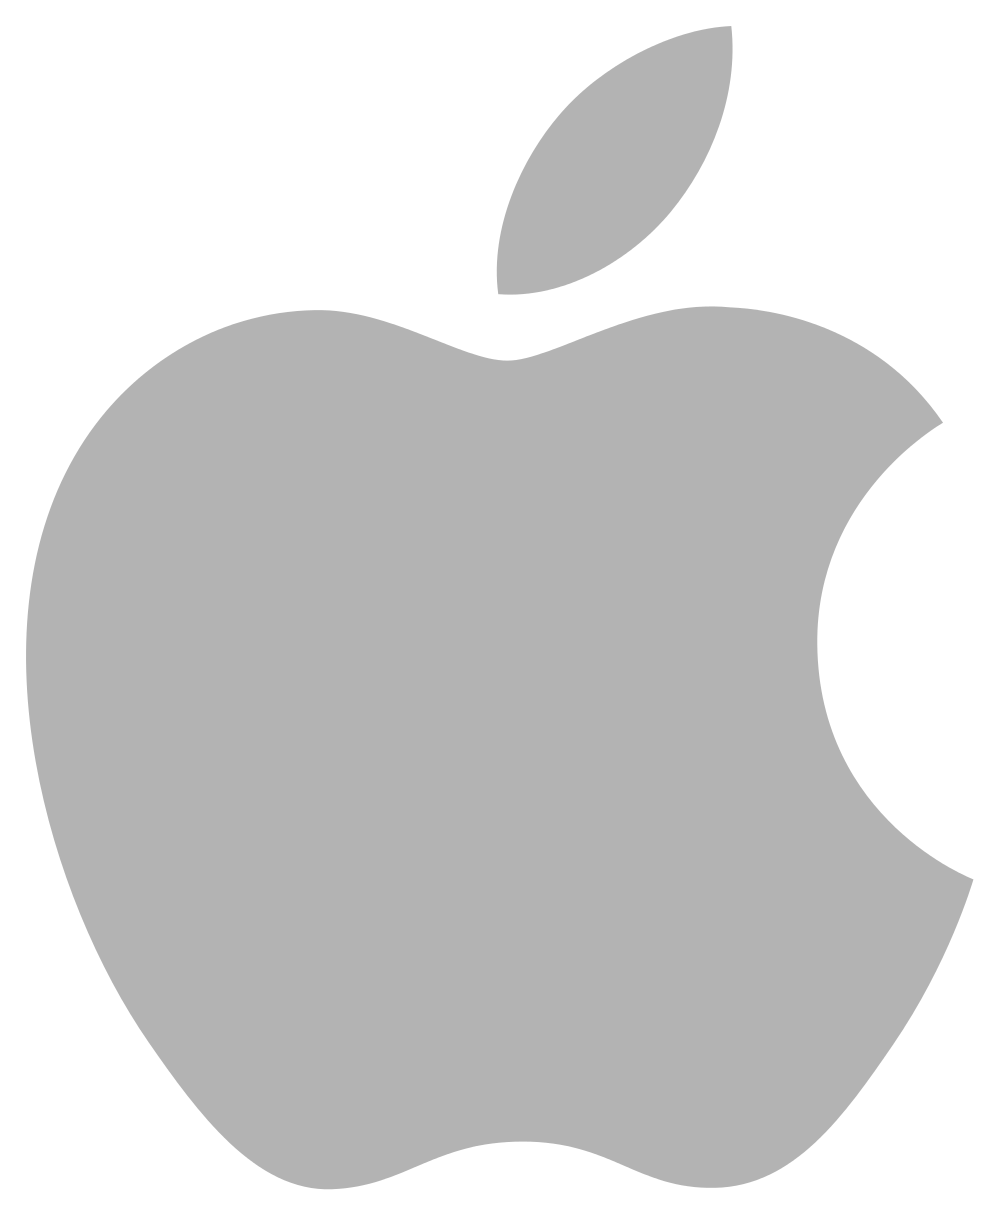 School apples standing on each other png. I kinda miss the